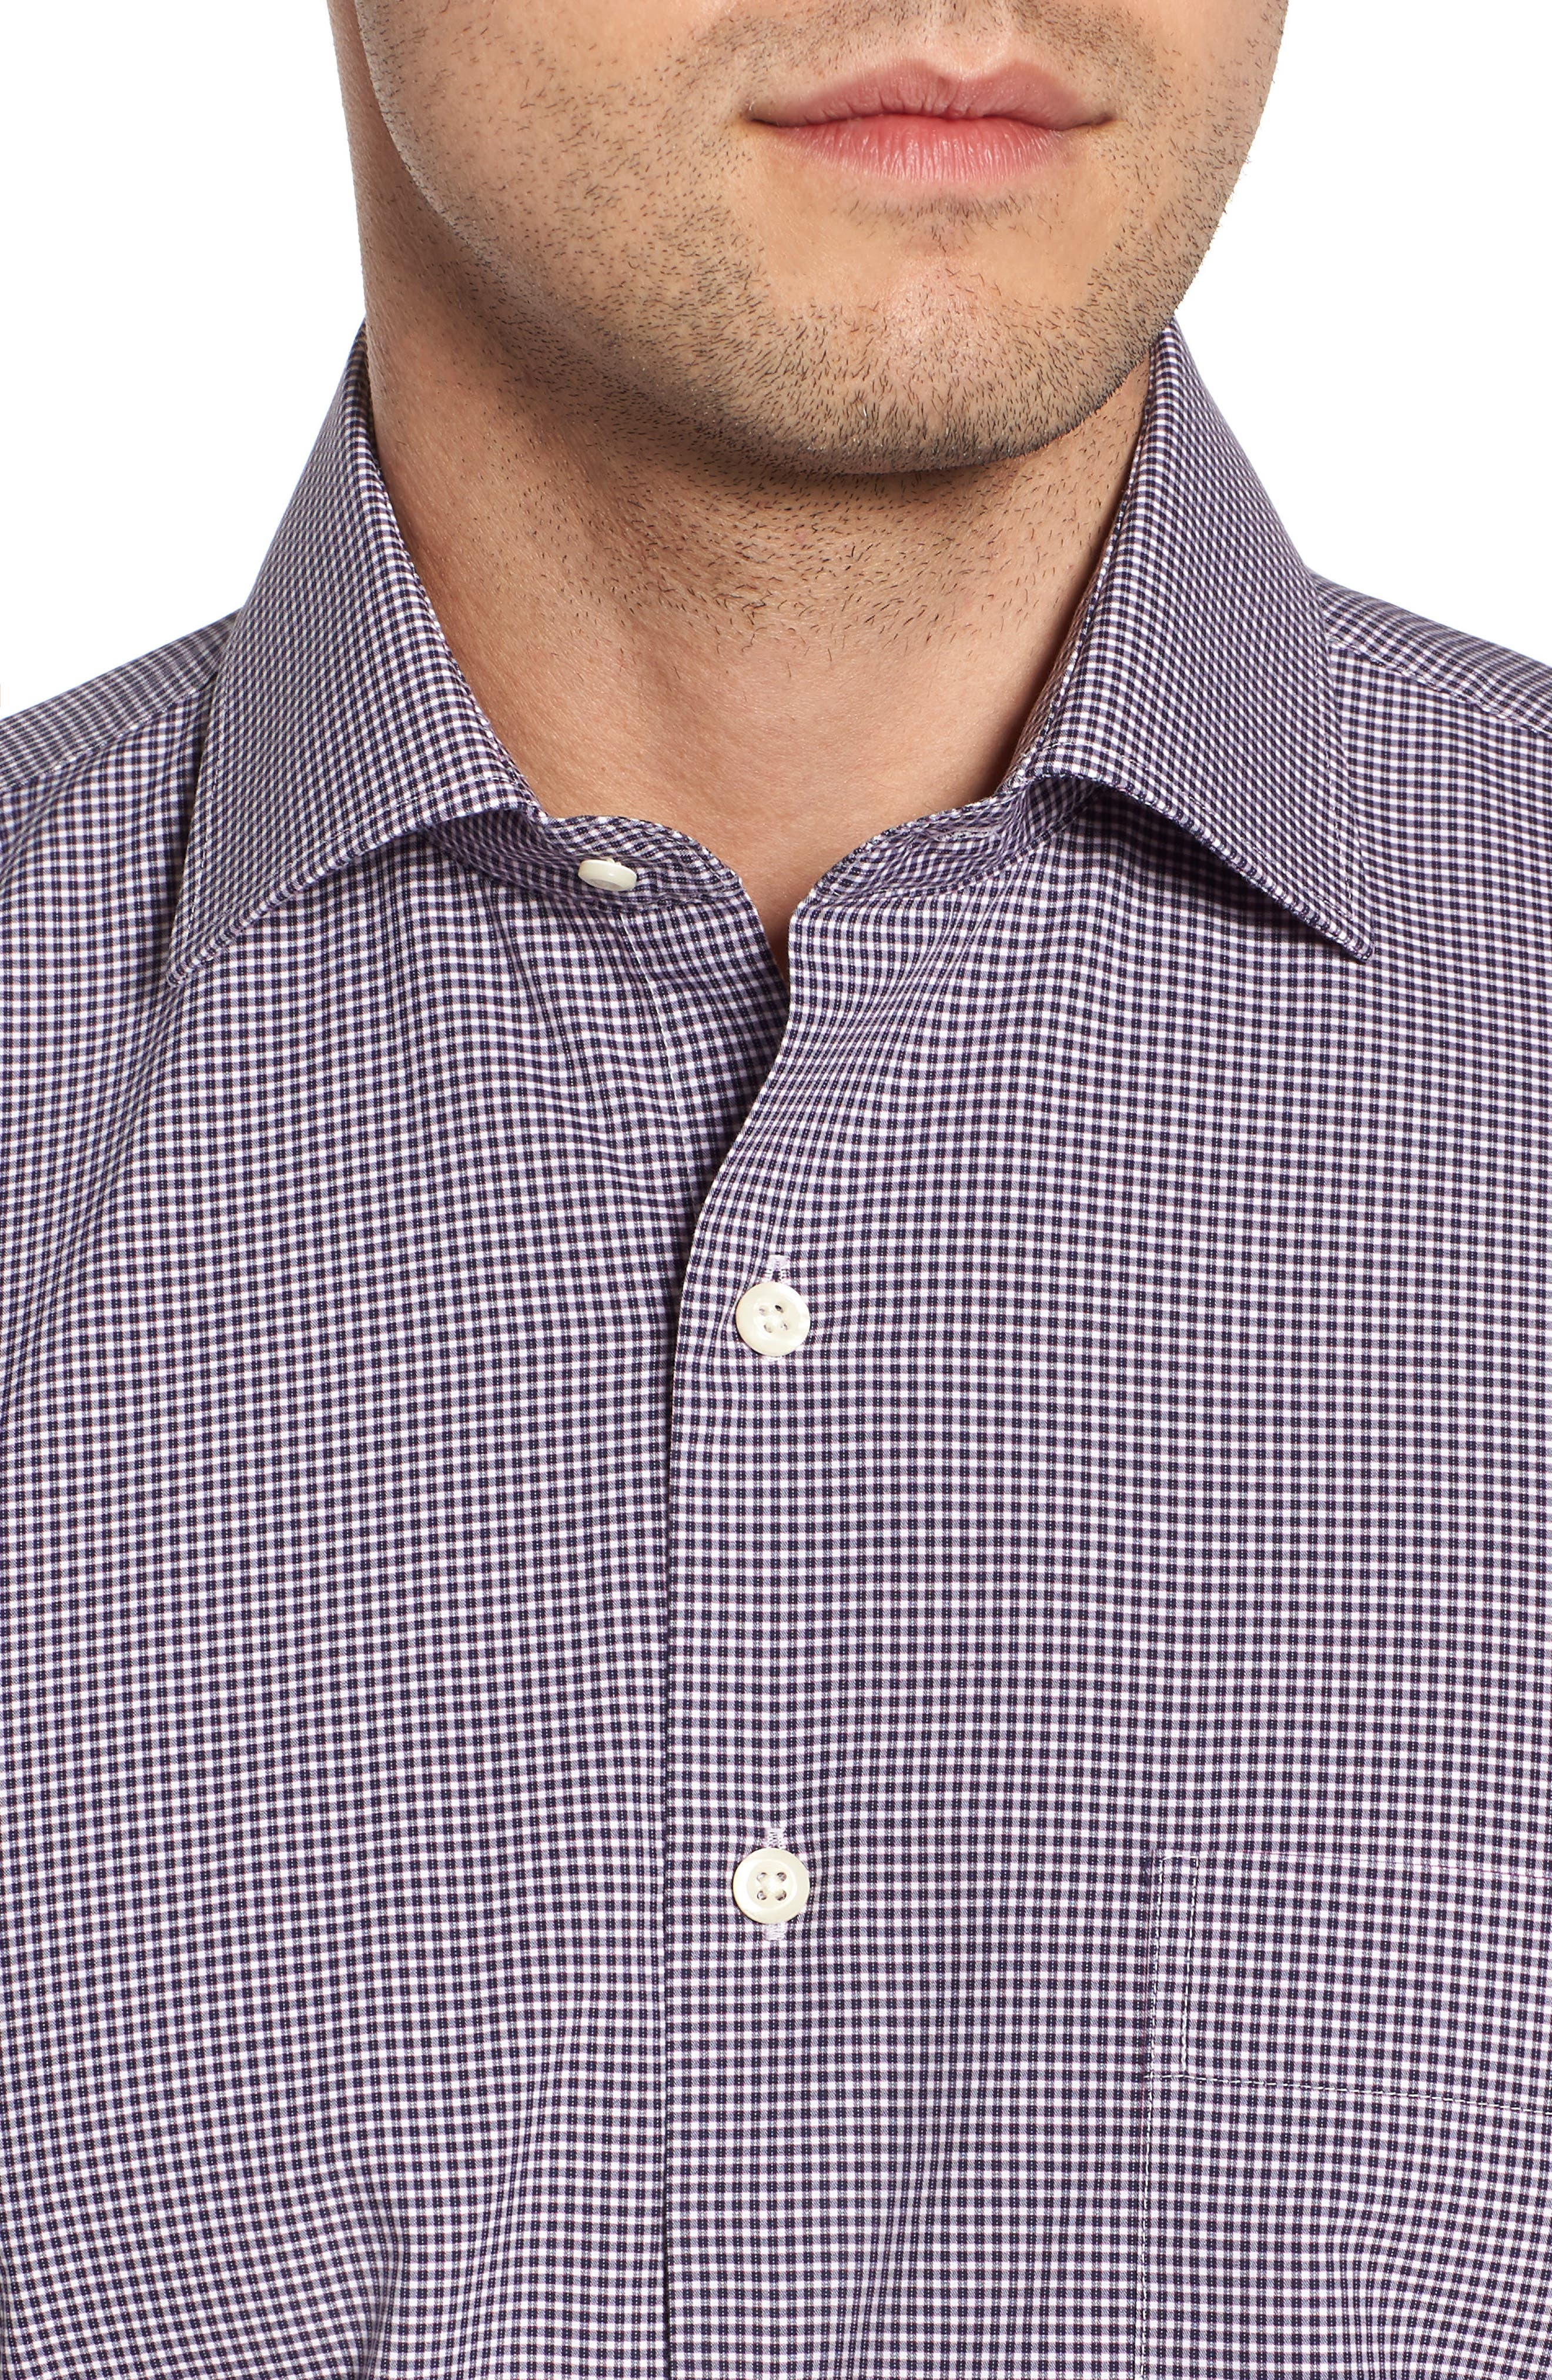 Crown Finish Wedgwood Microcheck Sport Shirt,                             Alternate thumbnail 4, color,                             410